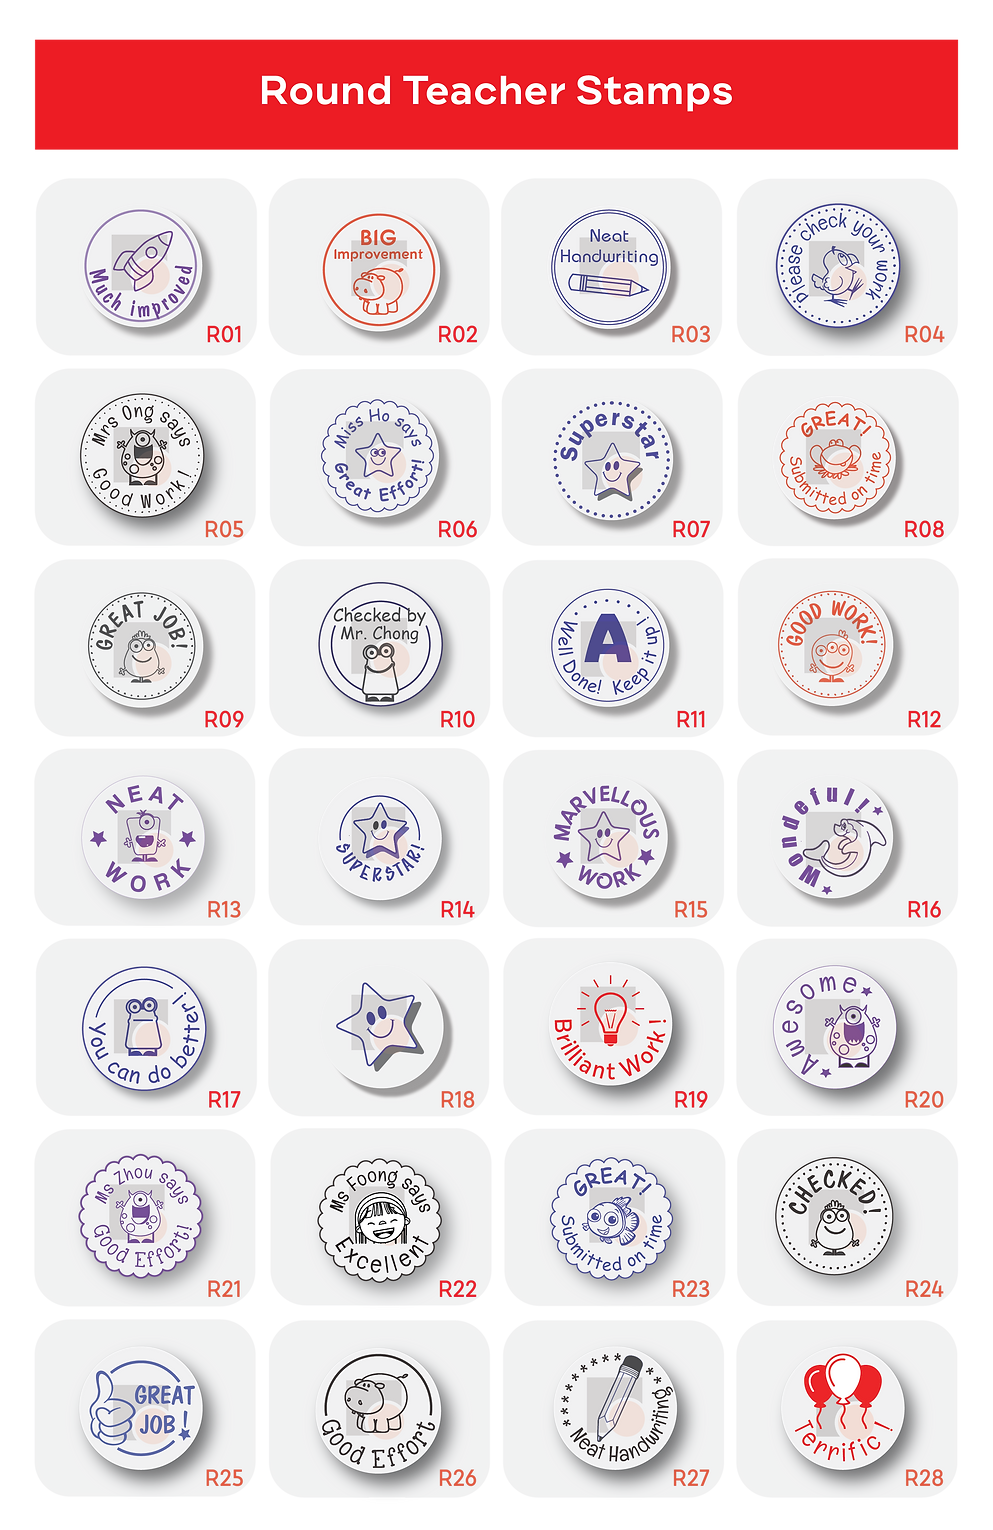 Round Teacher Stamps-01.png